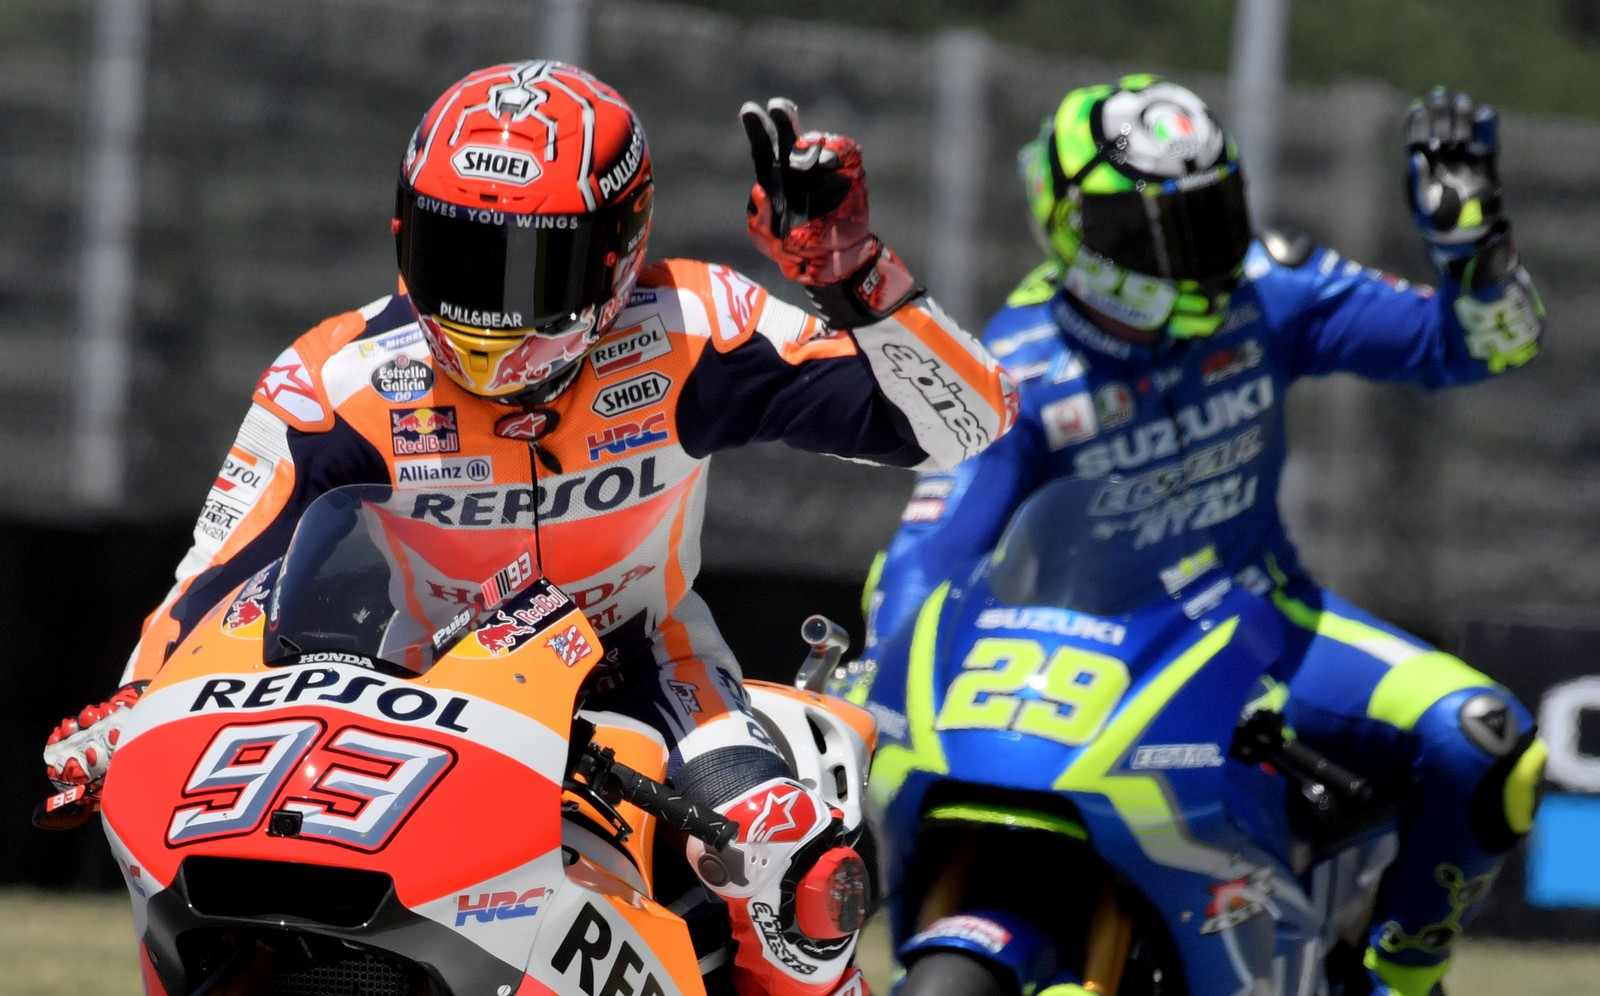 Repsol Honda rider Spanish Marc Marquez (L) and Suzuki Ecstar rider Italian Andrea Iannone wave during the Moto GP free practice session of the Italian Grand Prix at the Mugello track on June 2, 2017. Seven-time world MotoGP champion Rossi is struggling with chest pains after a motocross training accident that saw him hospitalised last week.  / AFP PHOTO / TIZIANA FABI        (Photo credit should read TIZIANA FABI/AFP/Getty Images)